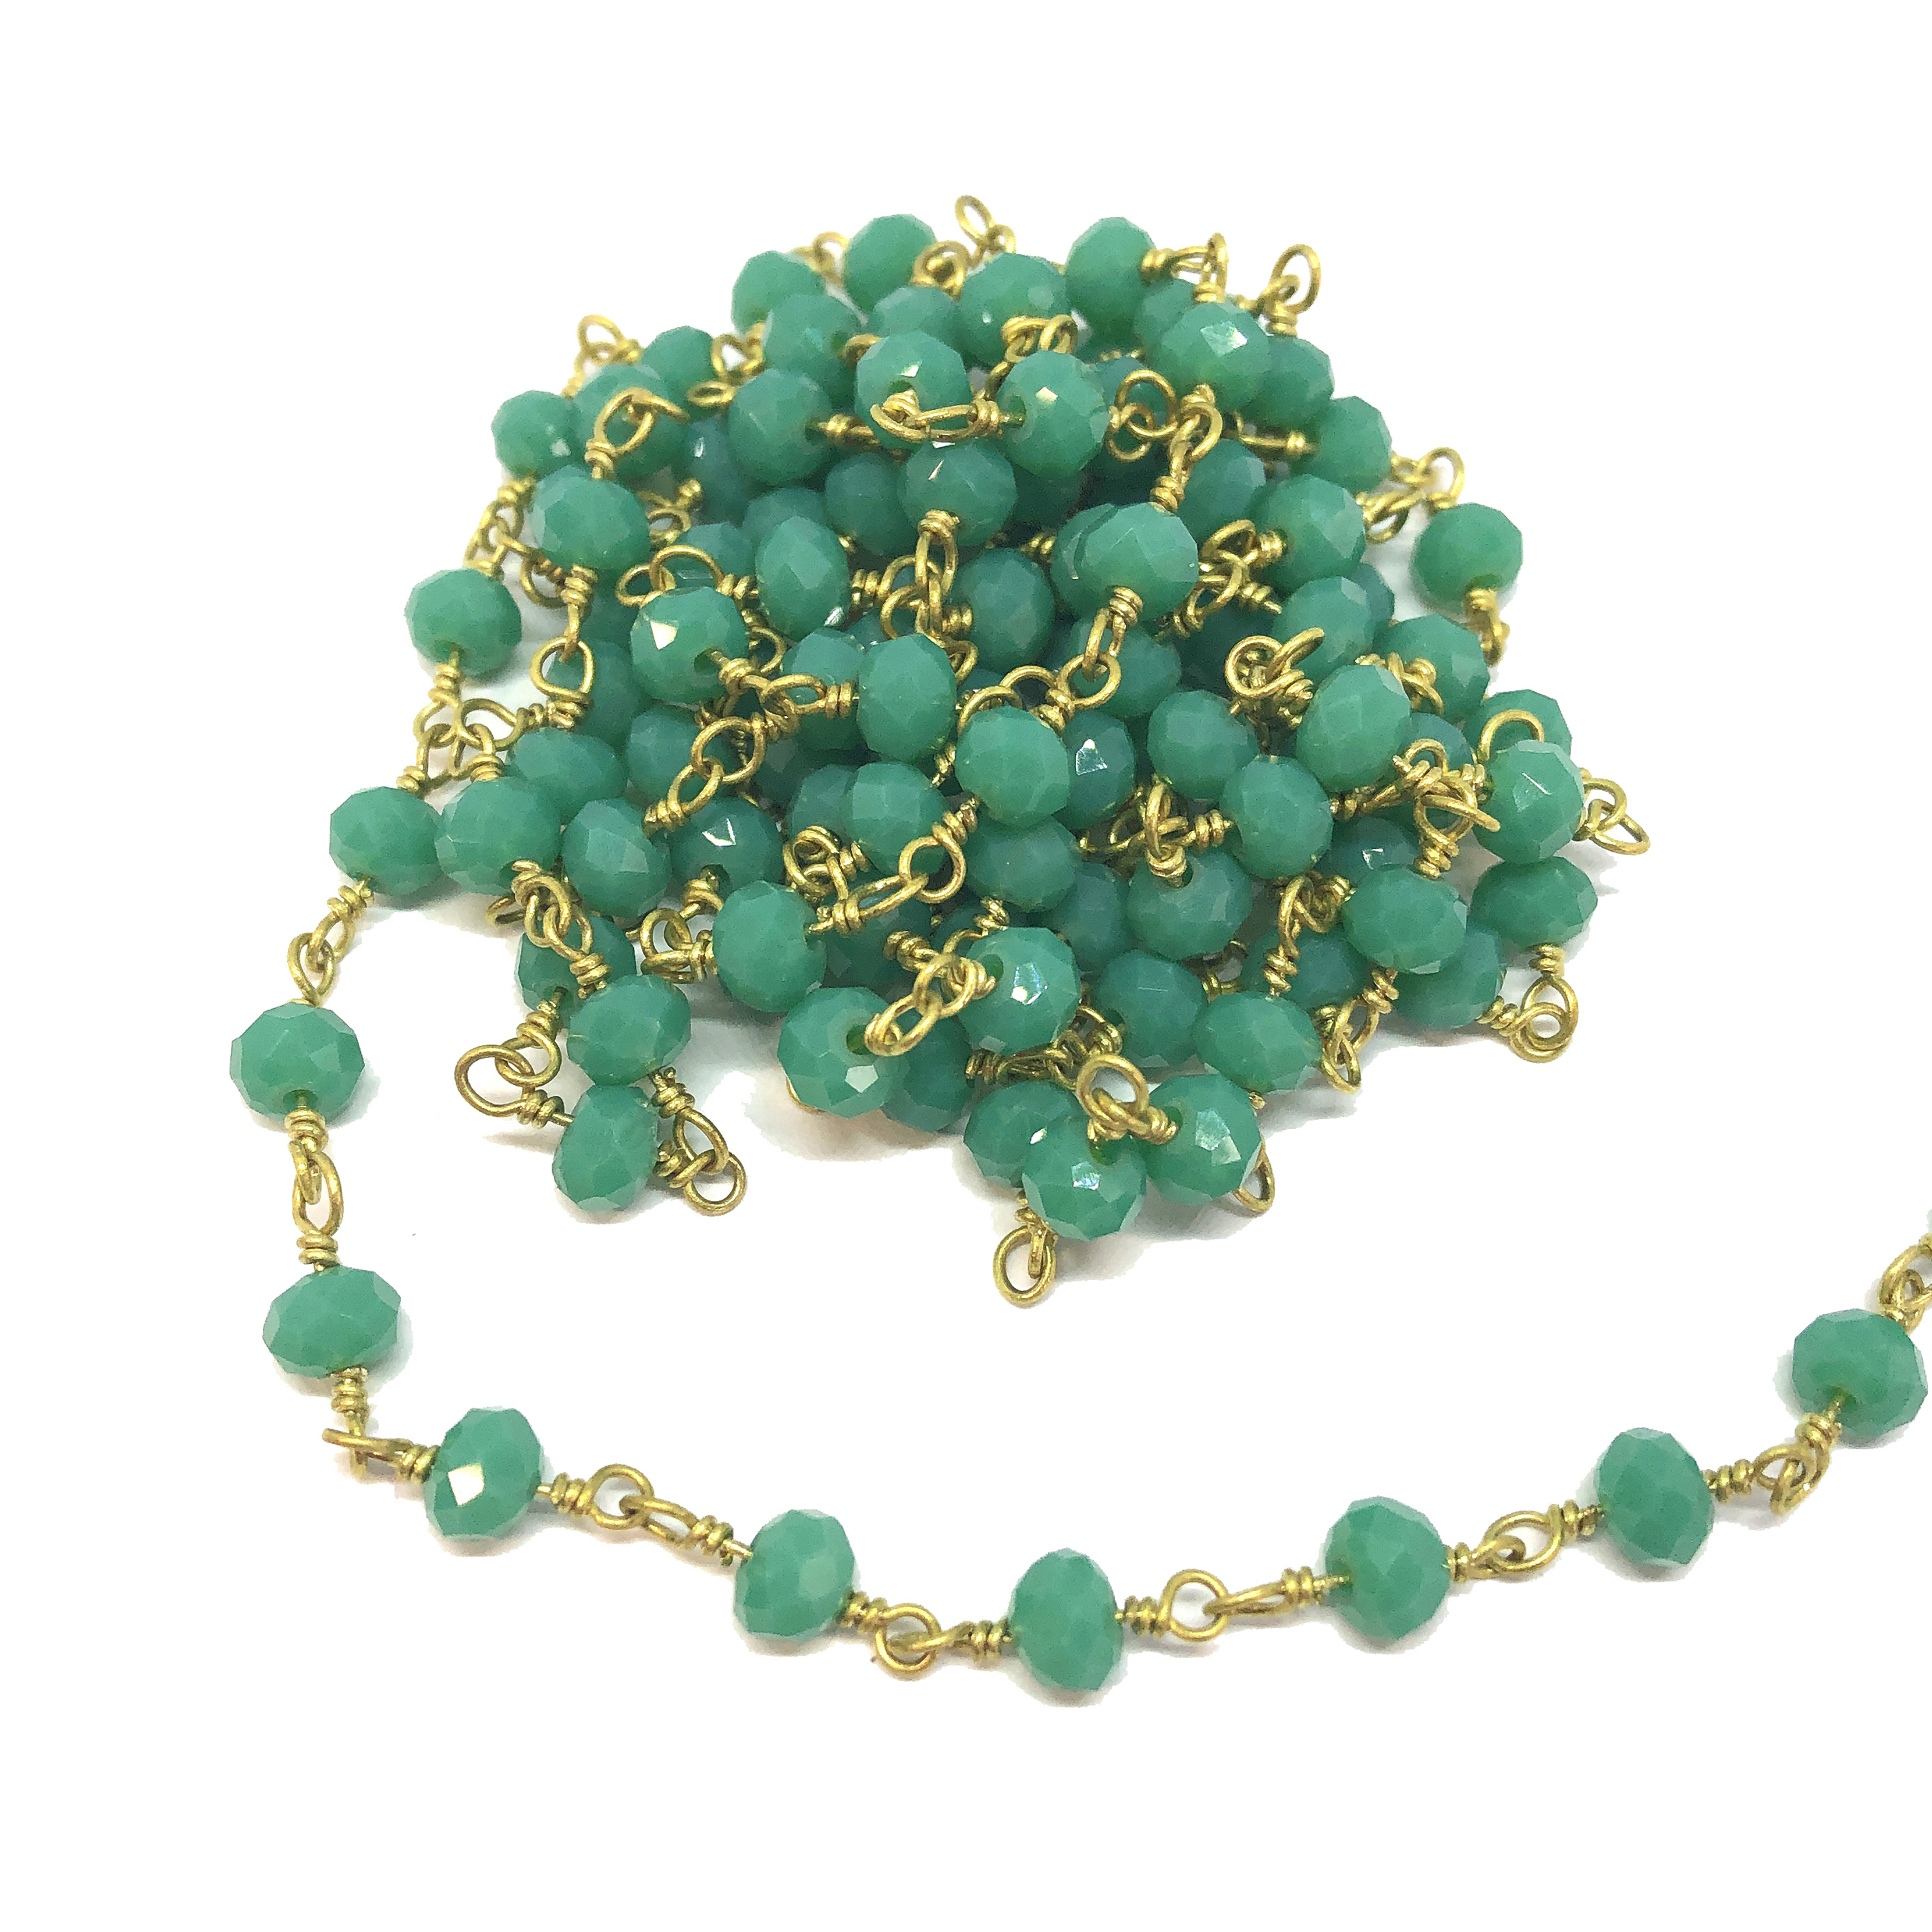 glass bead chain, bead and link chain, wire wrapped chain, deep sea green, glass beads, jewelry chain, jewelry making supplies, vintage jewelry supplies, bead chain, handmade chain, glass beads, chain, beaded chain, 08685, rosary chain, green beads